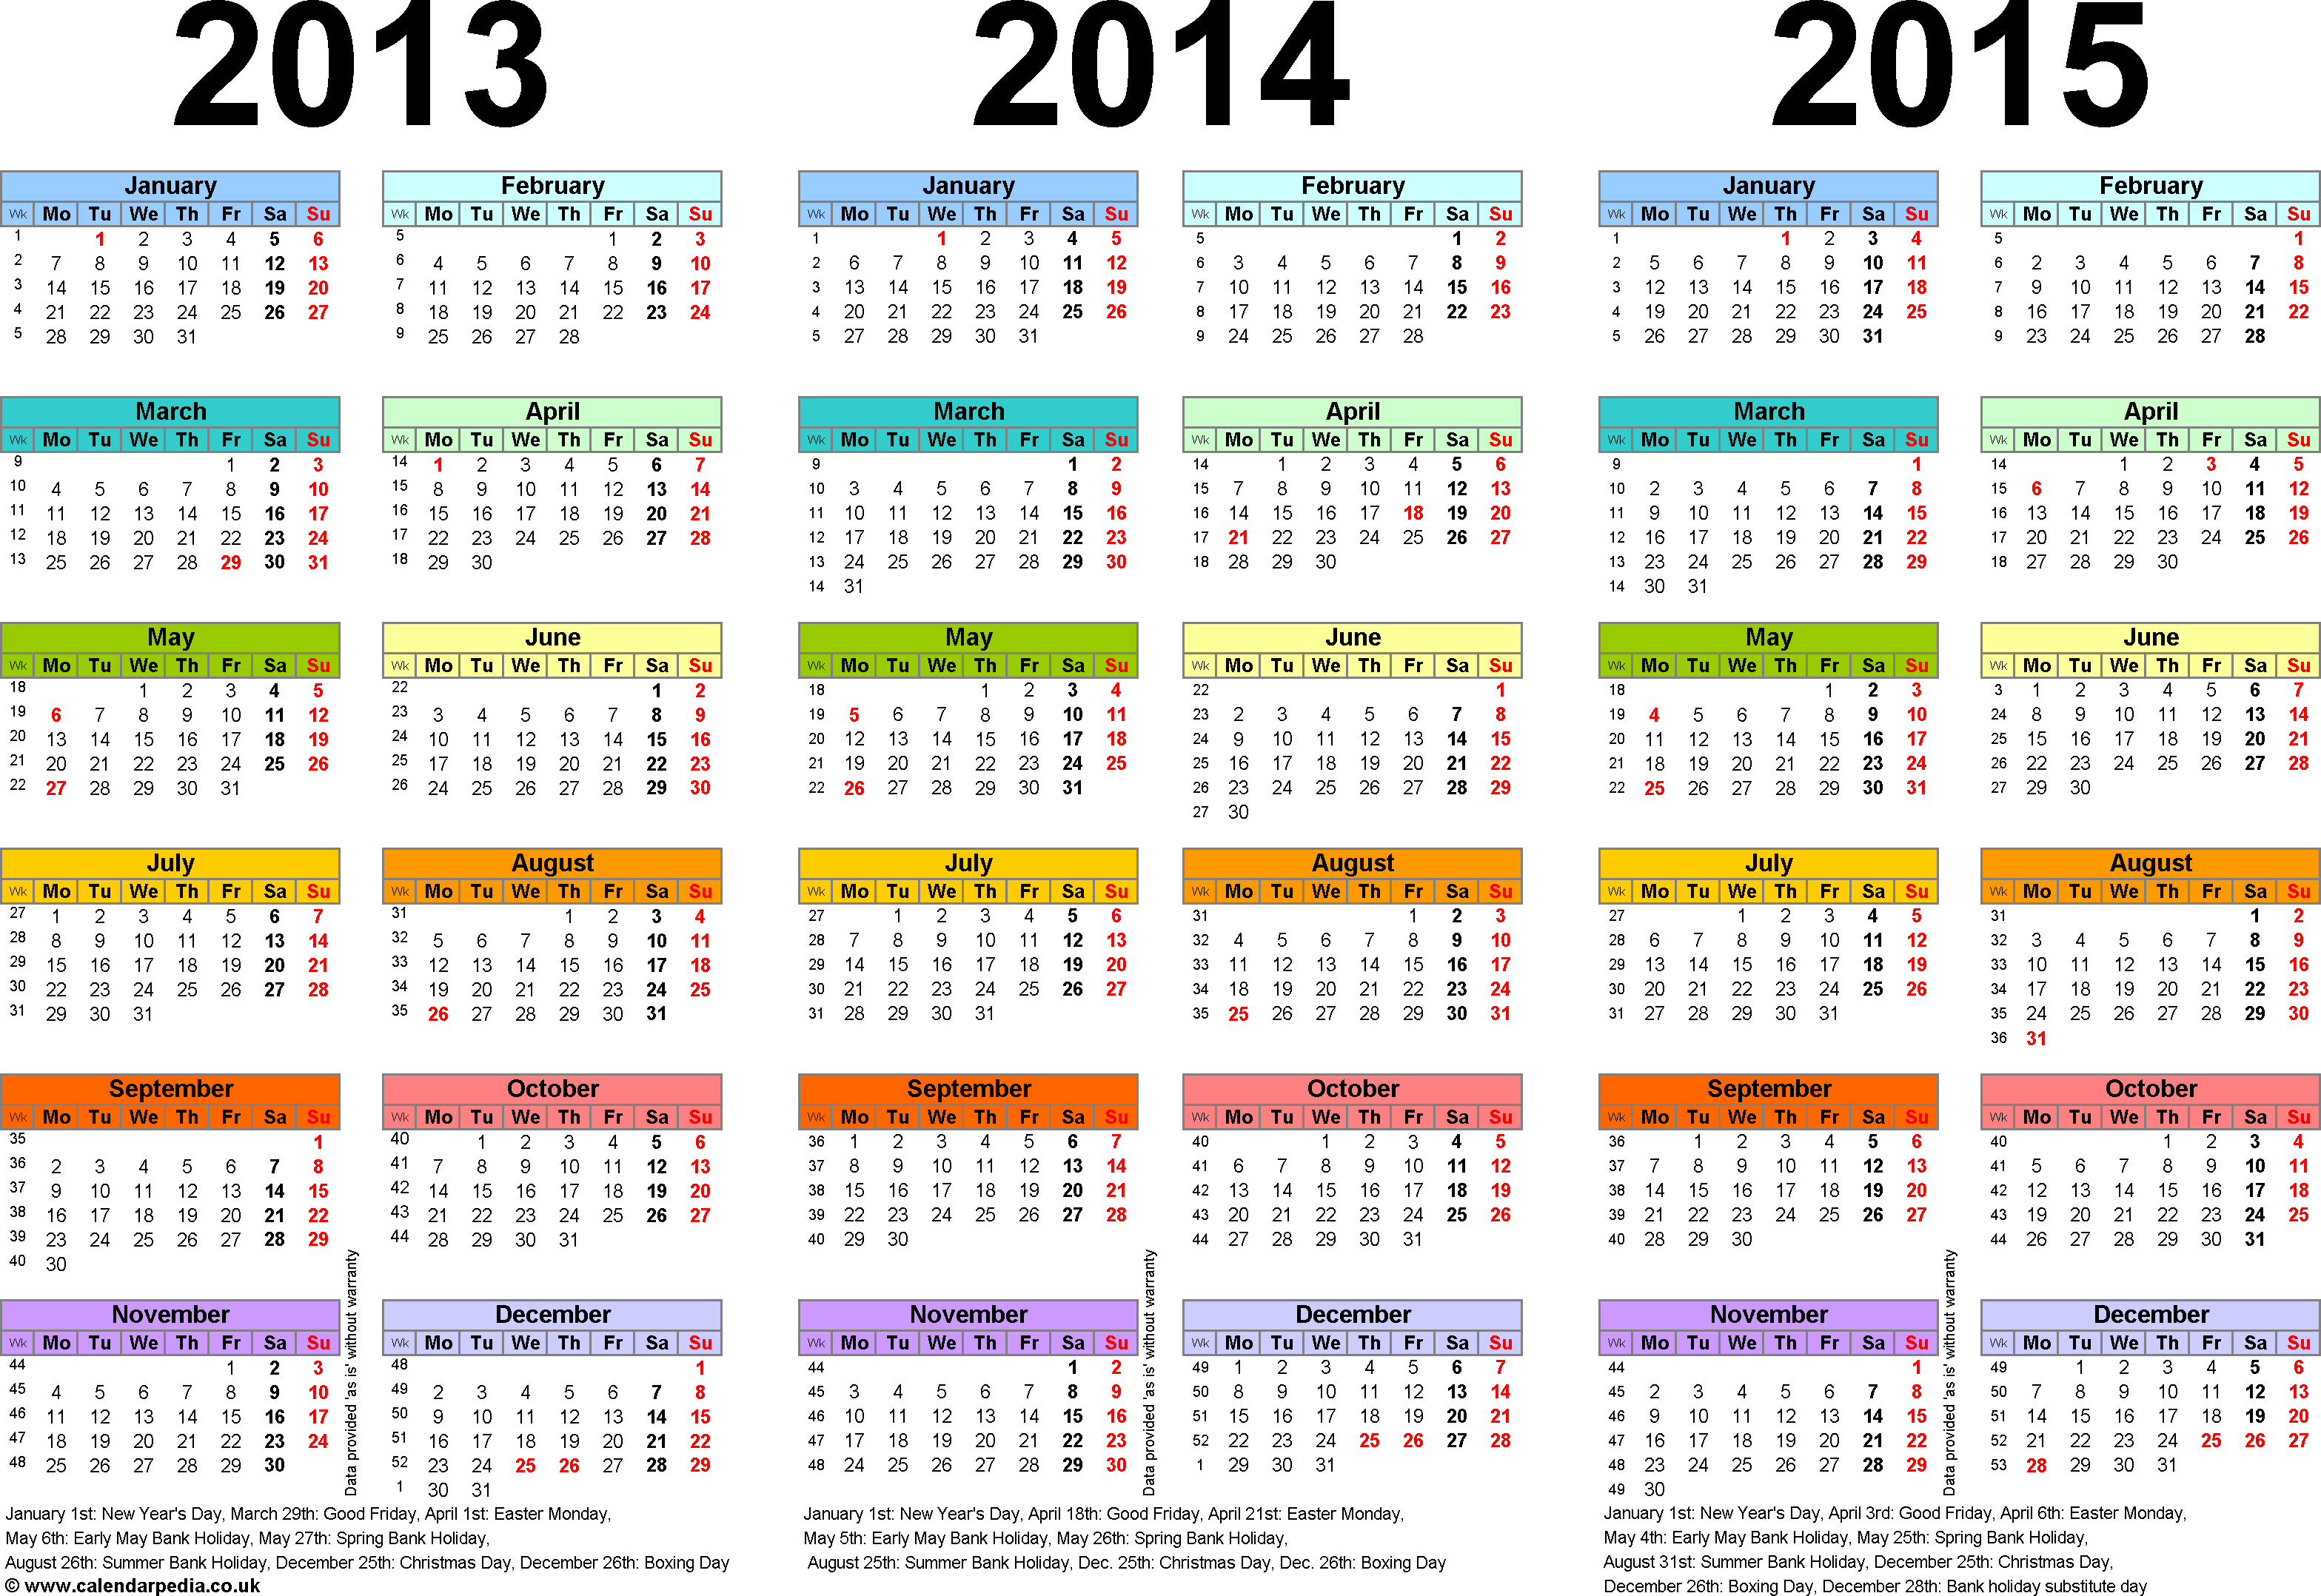 Download Template 1: Word template for three year calendar 2013-2015 in colour (landscape orientation, 1 page, A4)